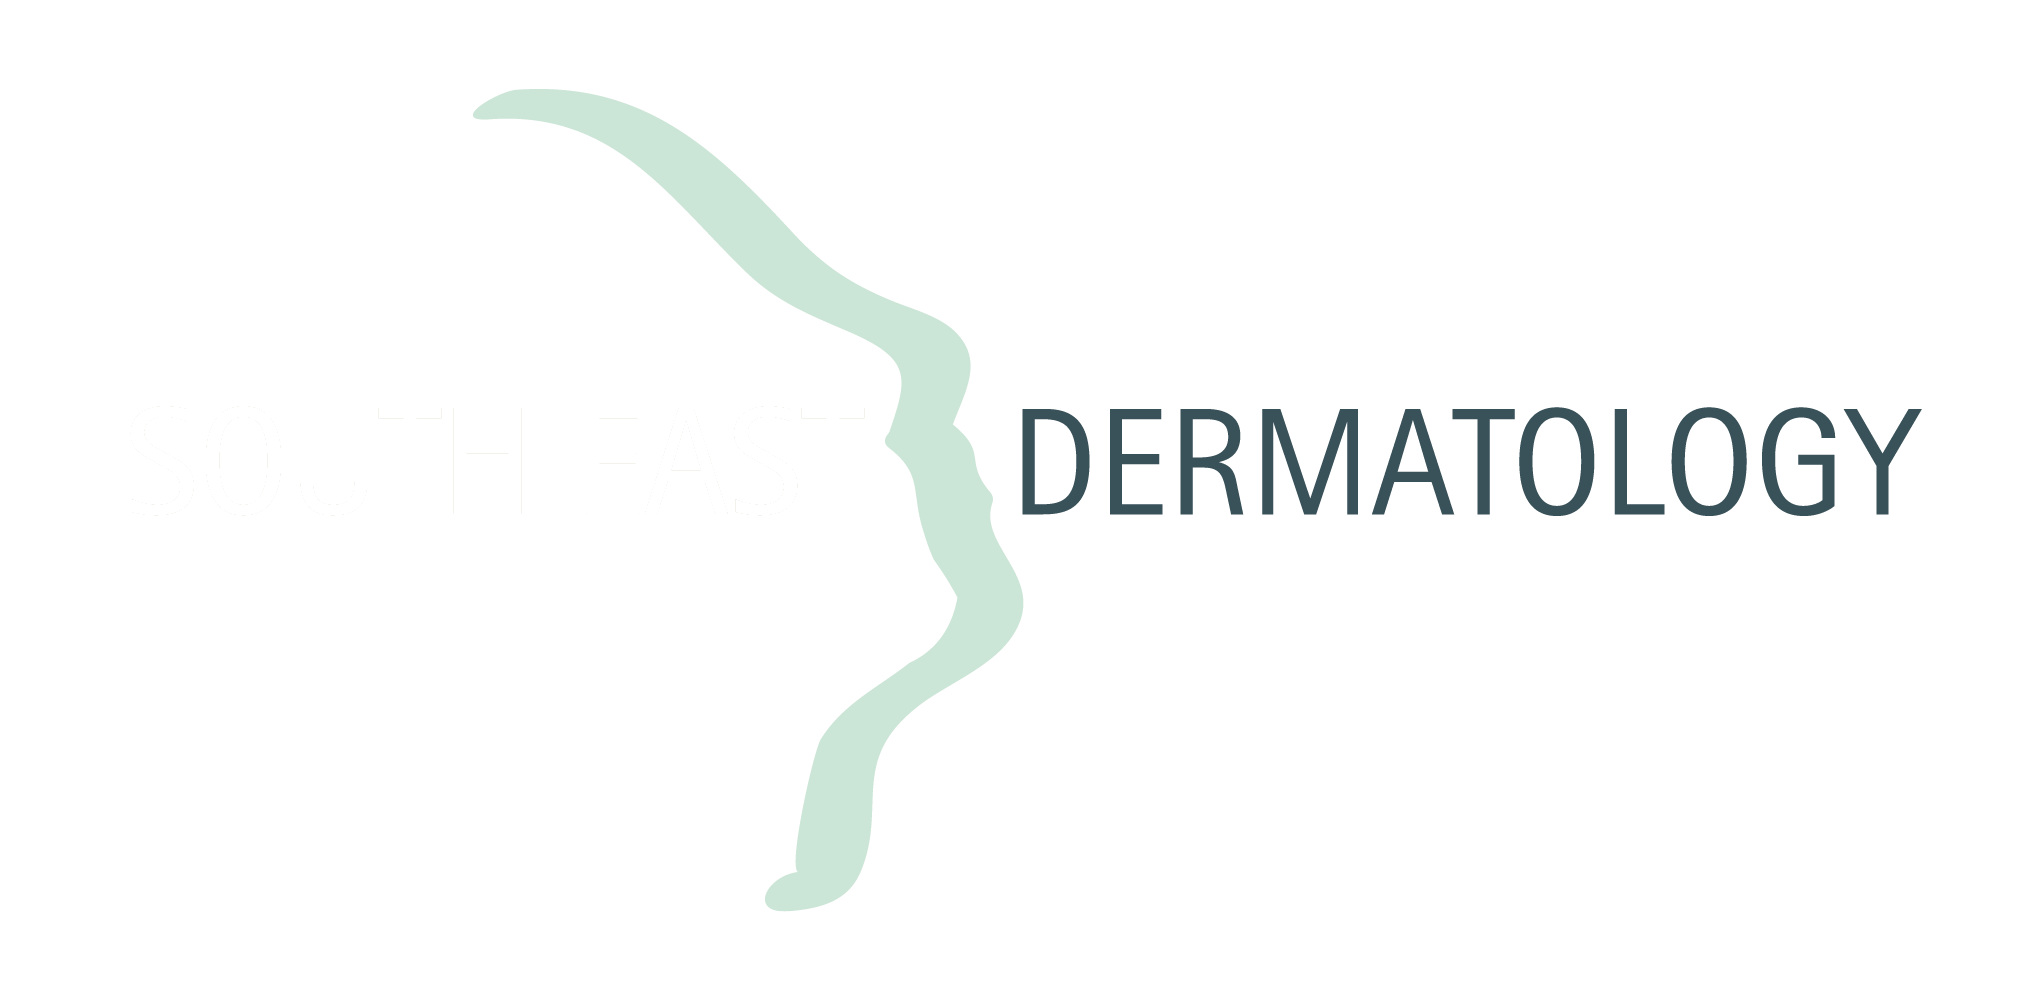 South East Dermatology